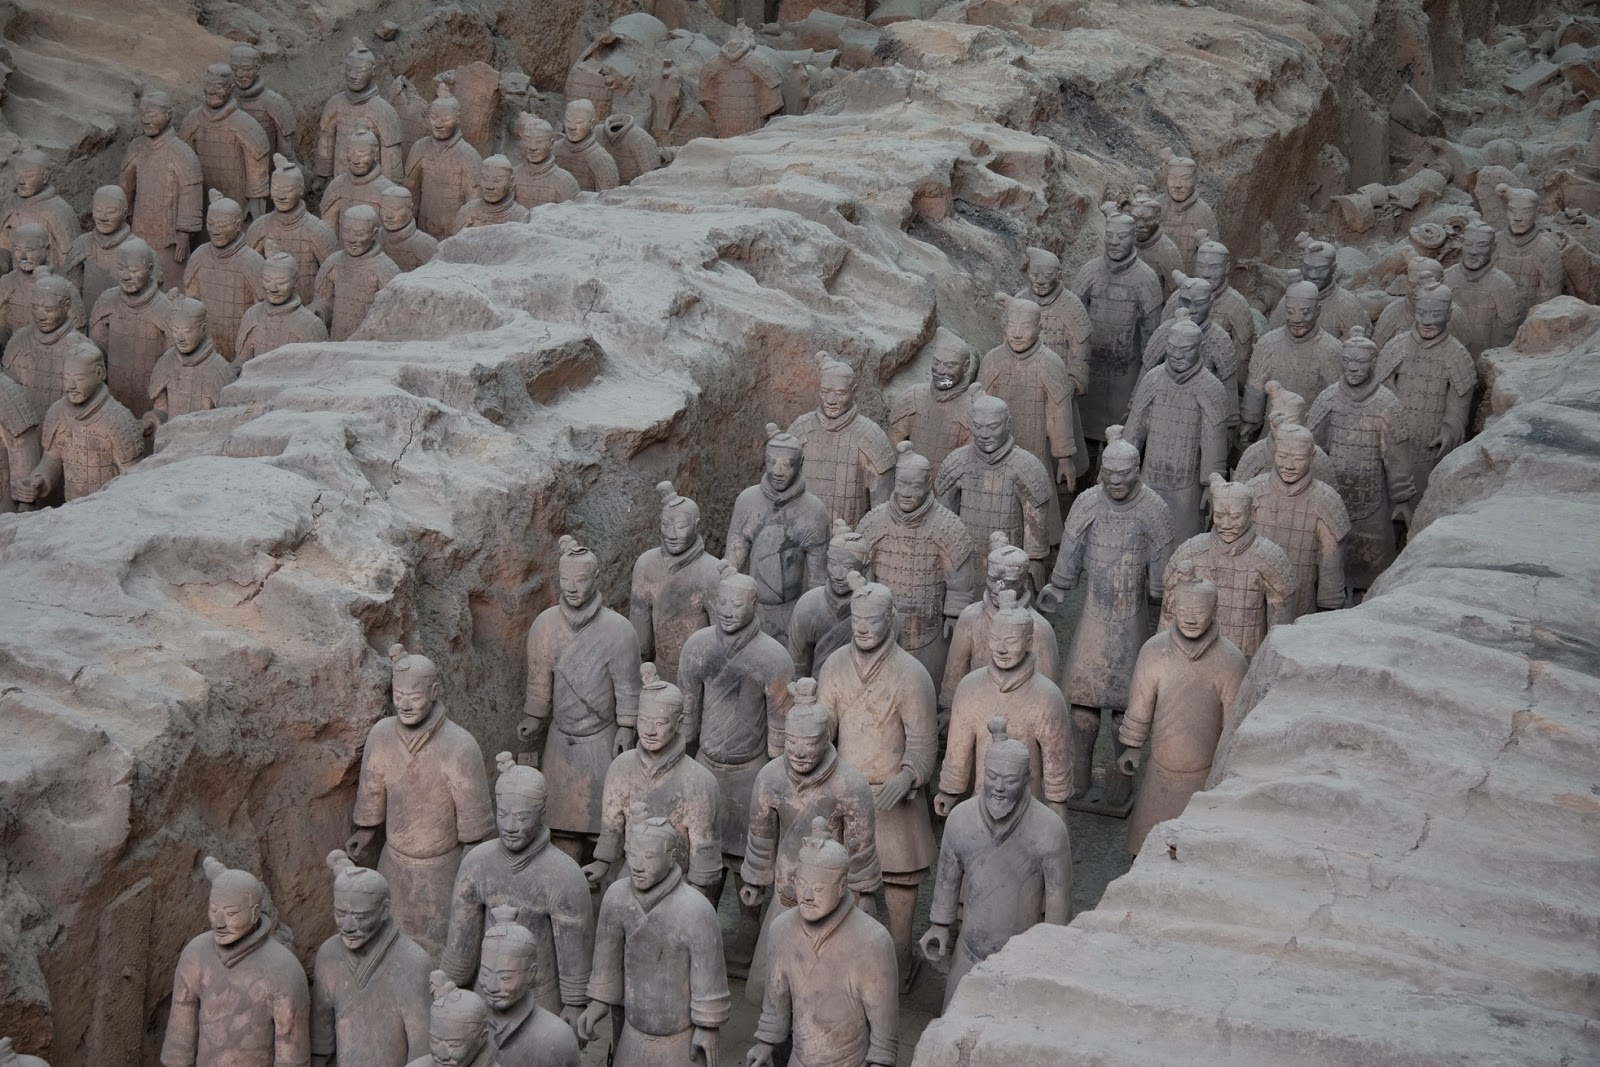 2,000-year-old mystery of China's Terracotta Army solved